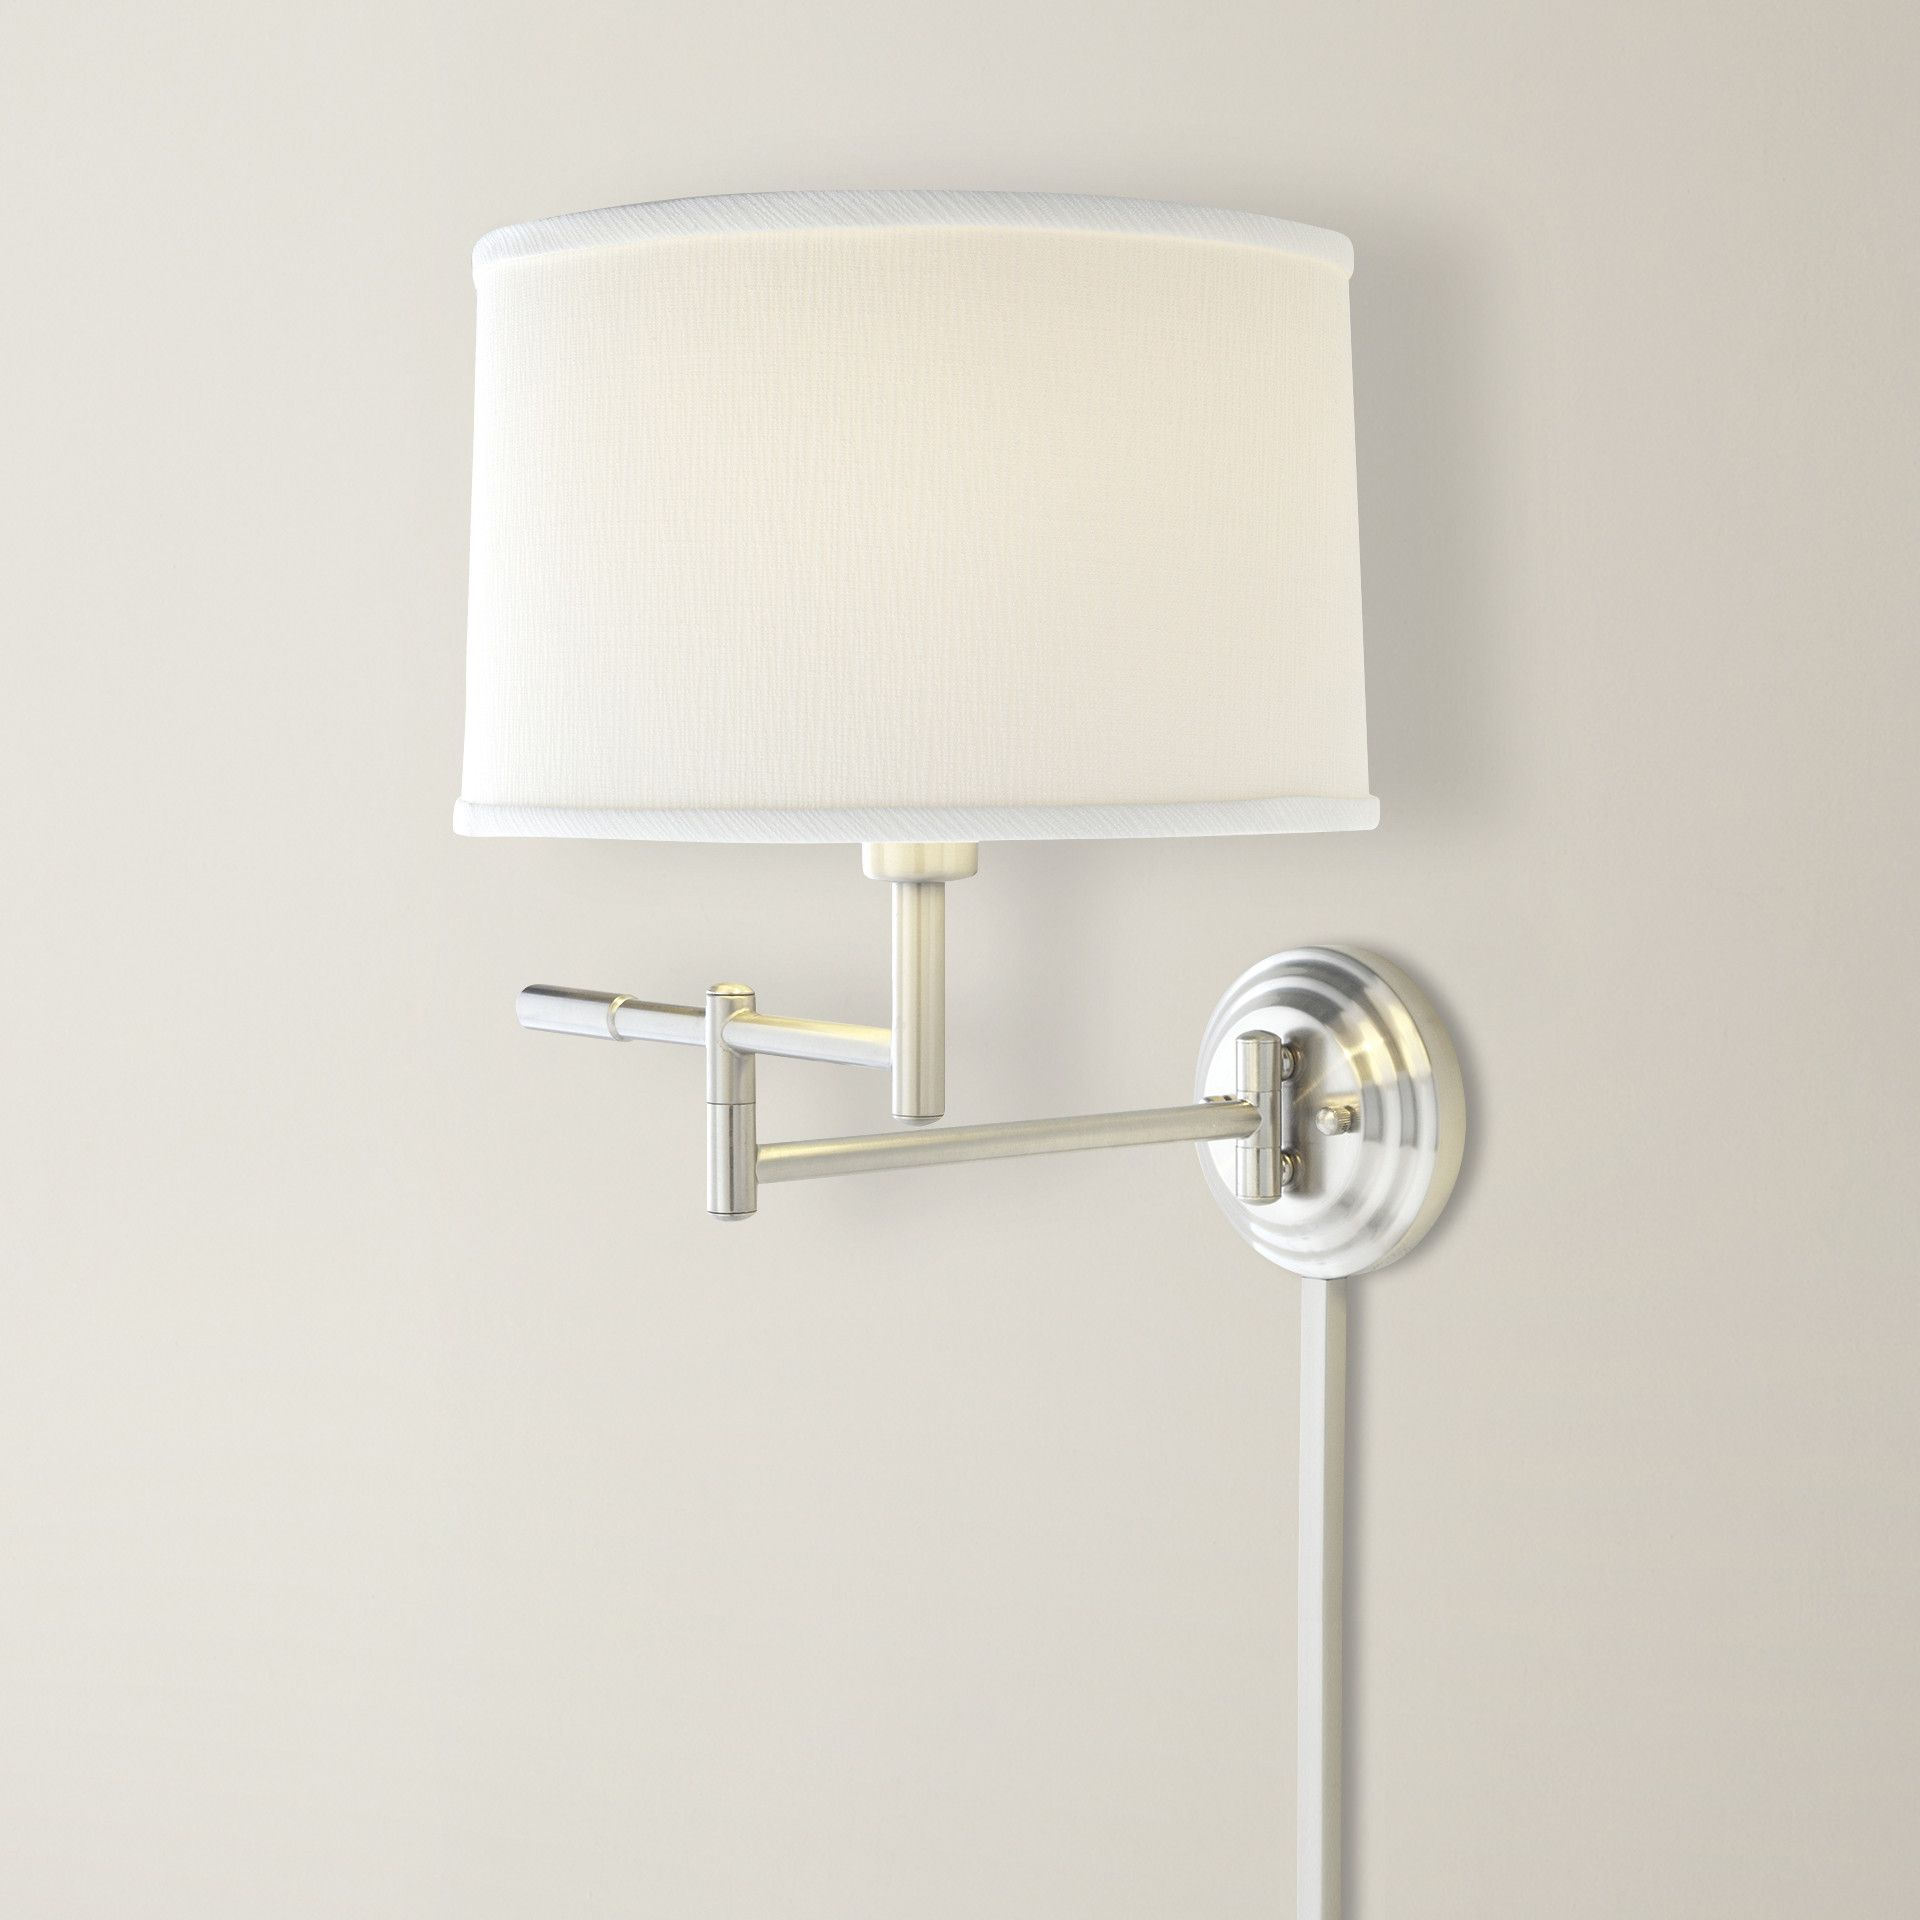 Waucoba 1 Light Swing Arm Wall Sconces Sconces Swing Arm